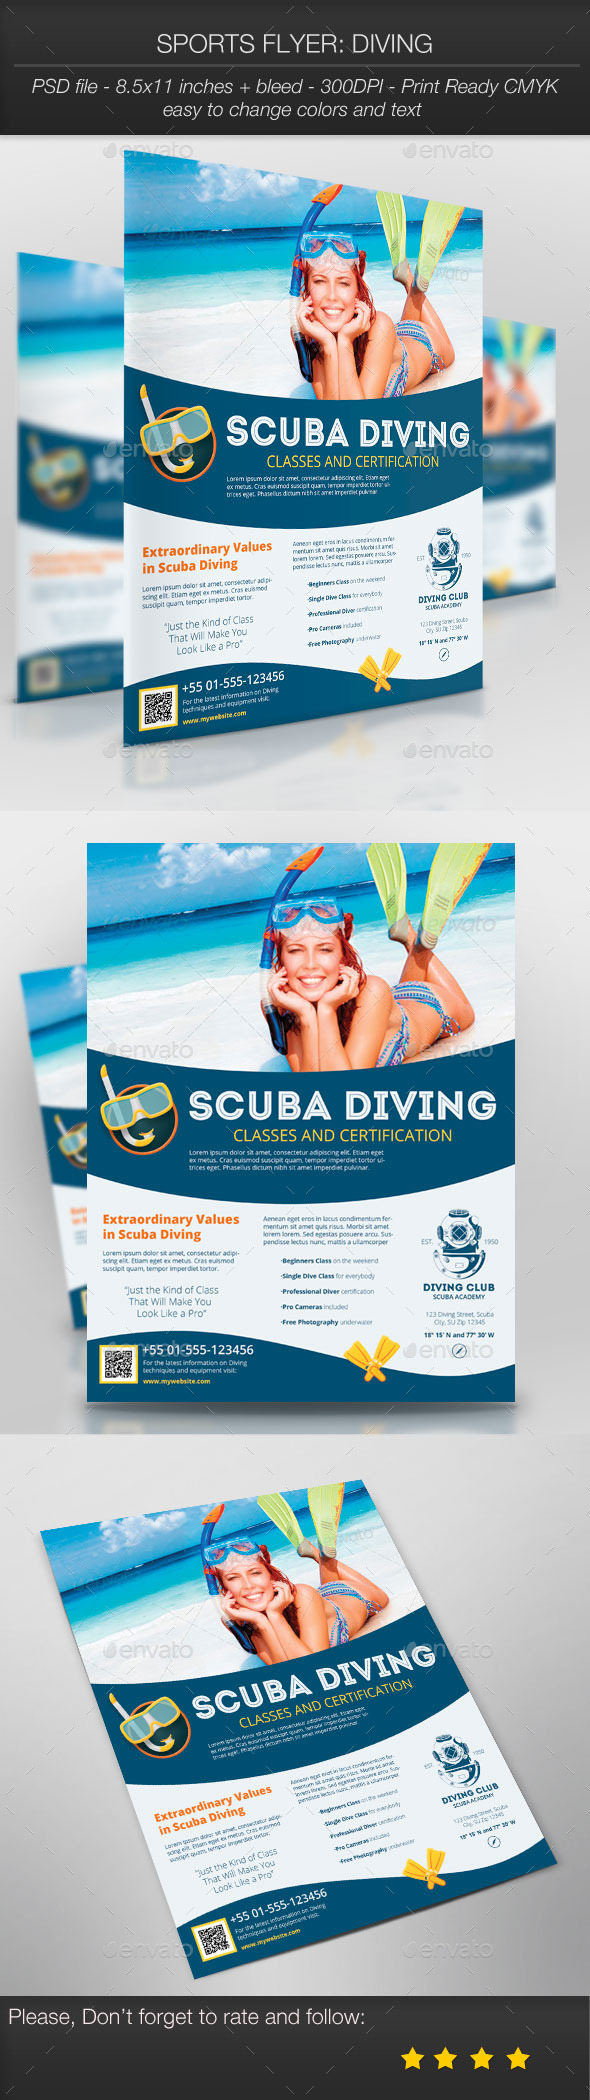 GraphicRiver Sports Flyer Diving 9789651